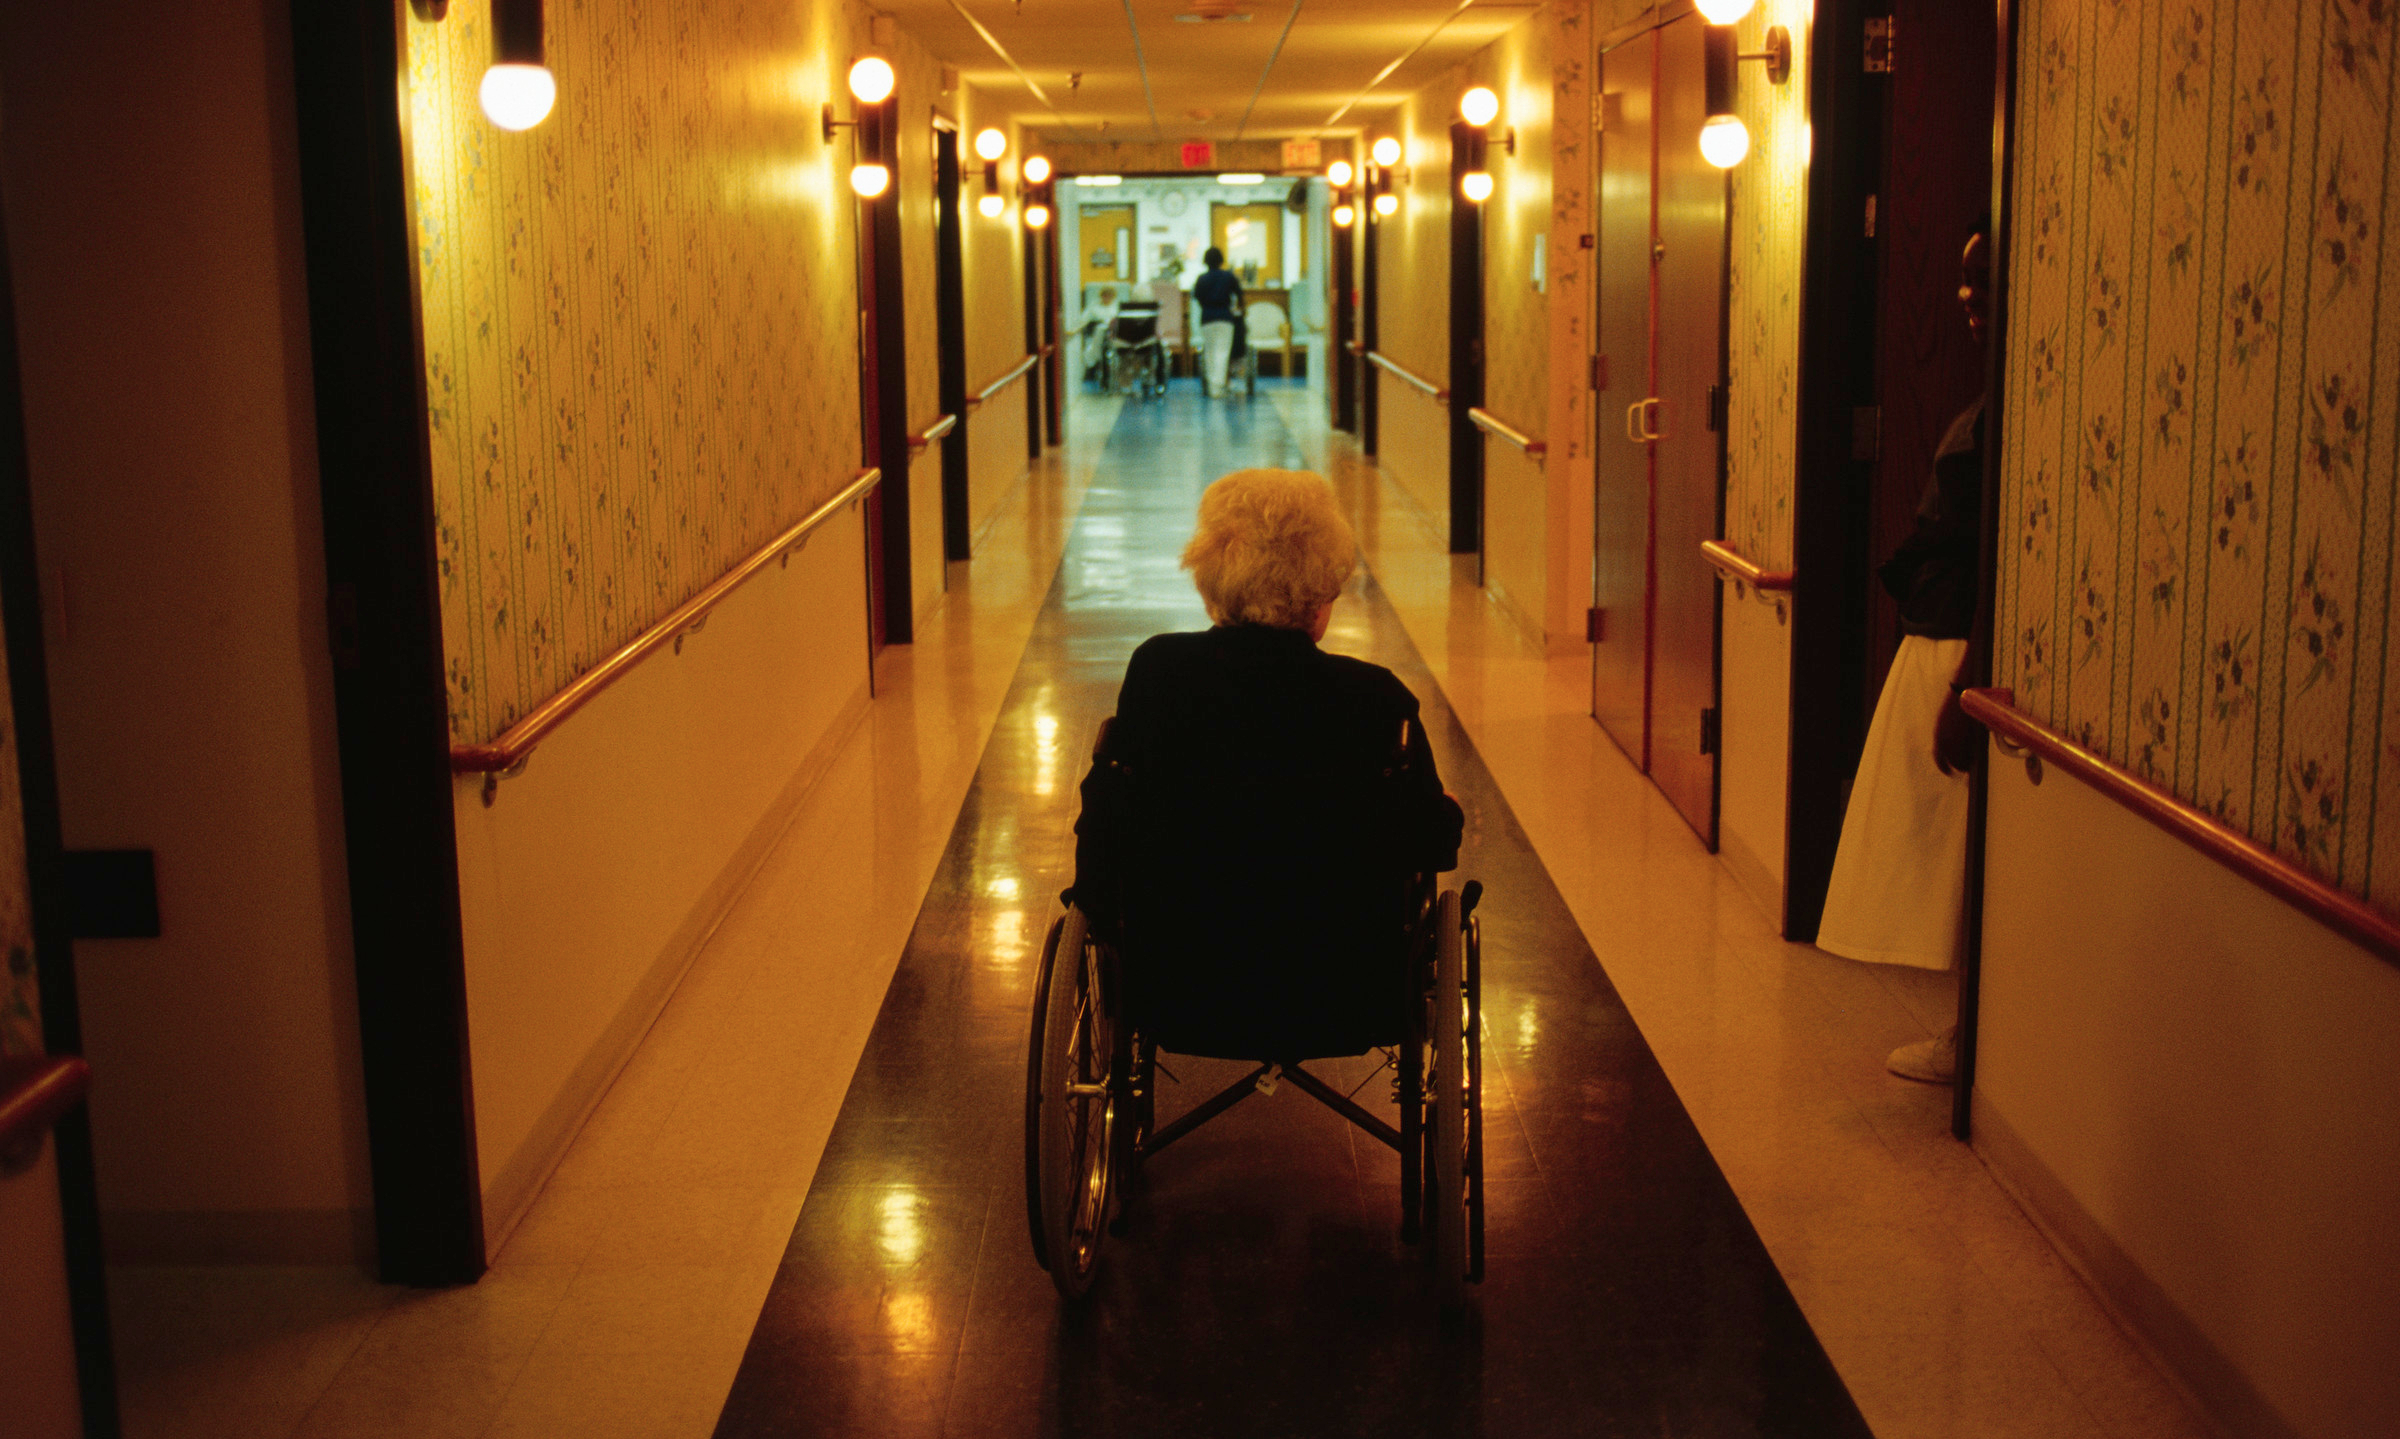 research paper on nursing home abuse Papers on nursing home care and elderly abuse term papers and research papers  is not relevant to nursing home practice the paper recommends involving.